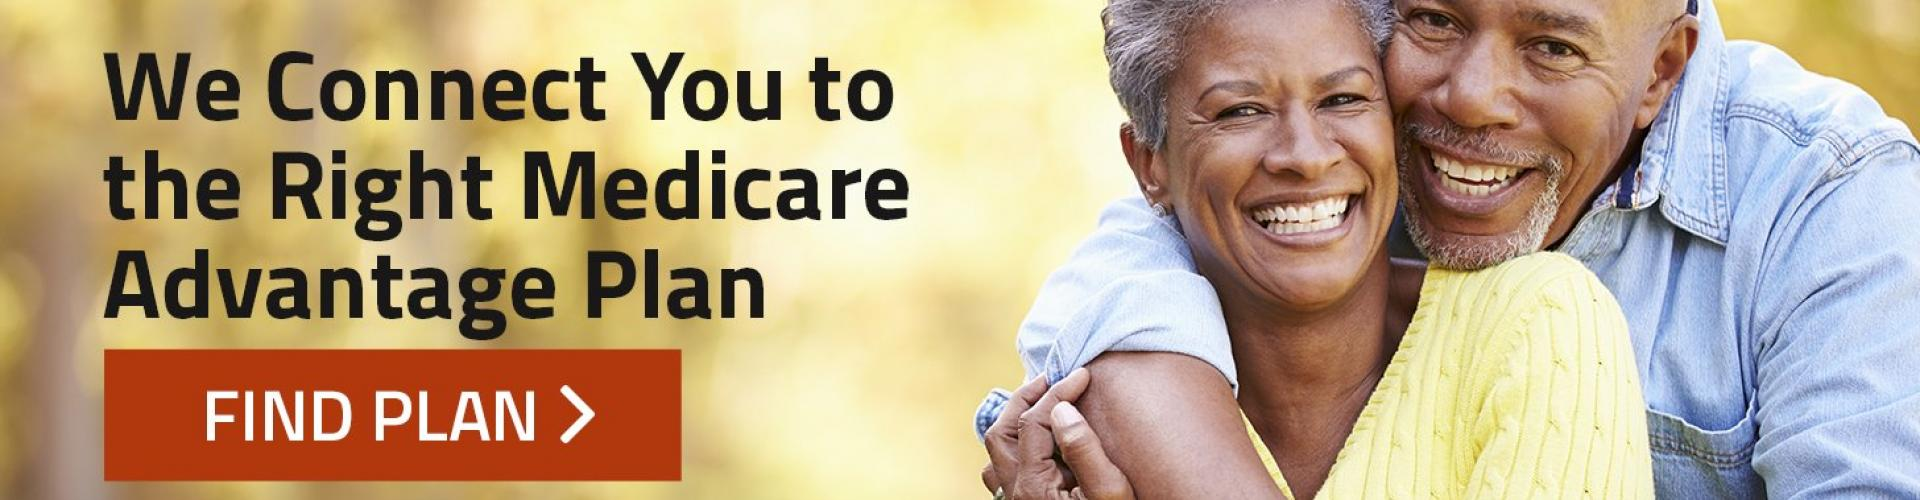 Original Medicare vs. Medicare Advantage: Here's How to Know the Difference